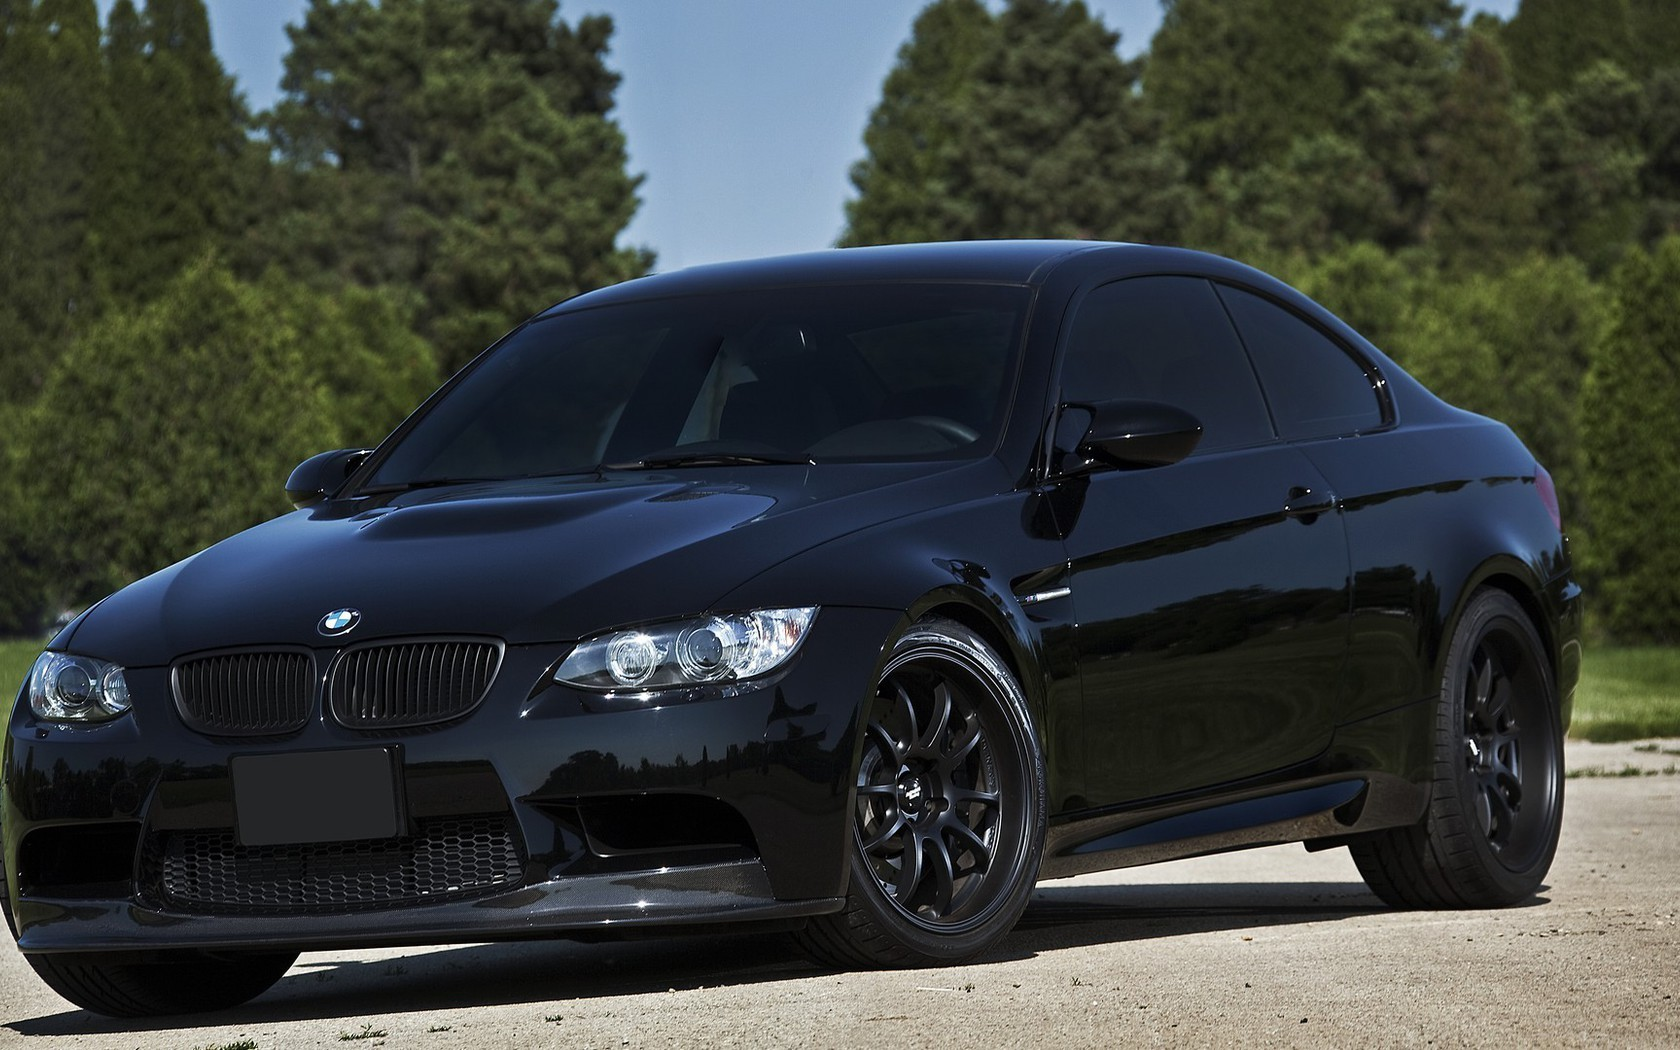 Bmw M3 Germany Black Cars Nature Wallpaper Allwallpaper